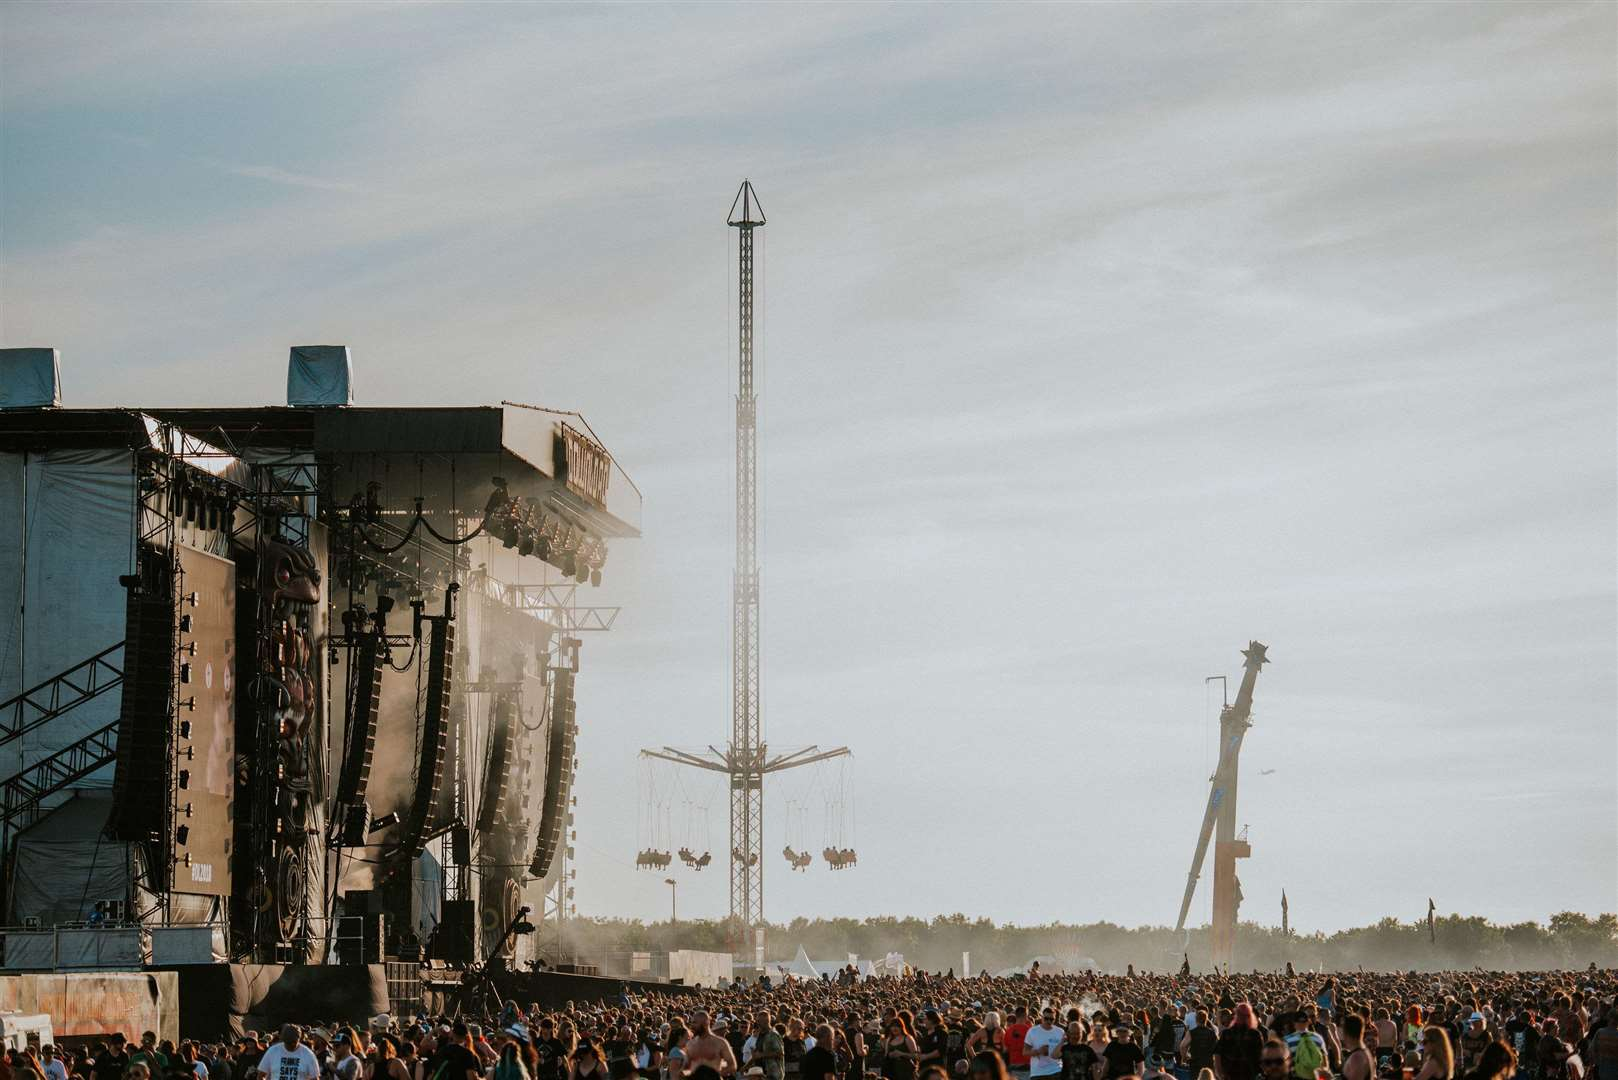 Download 2018 (6928594)